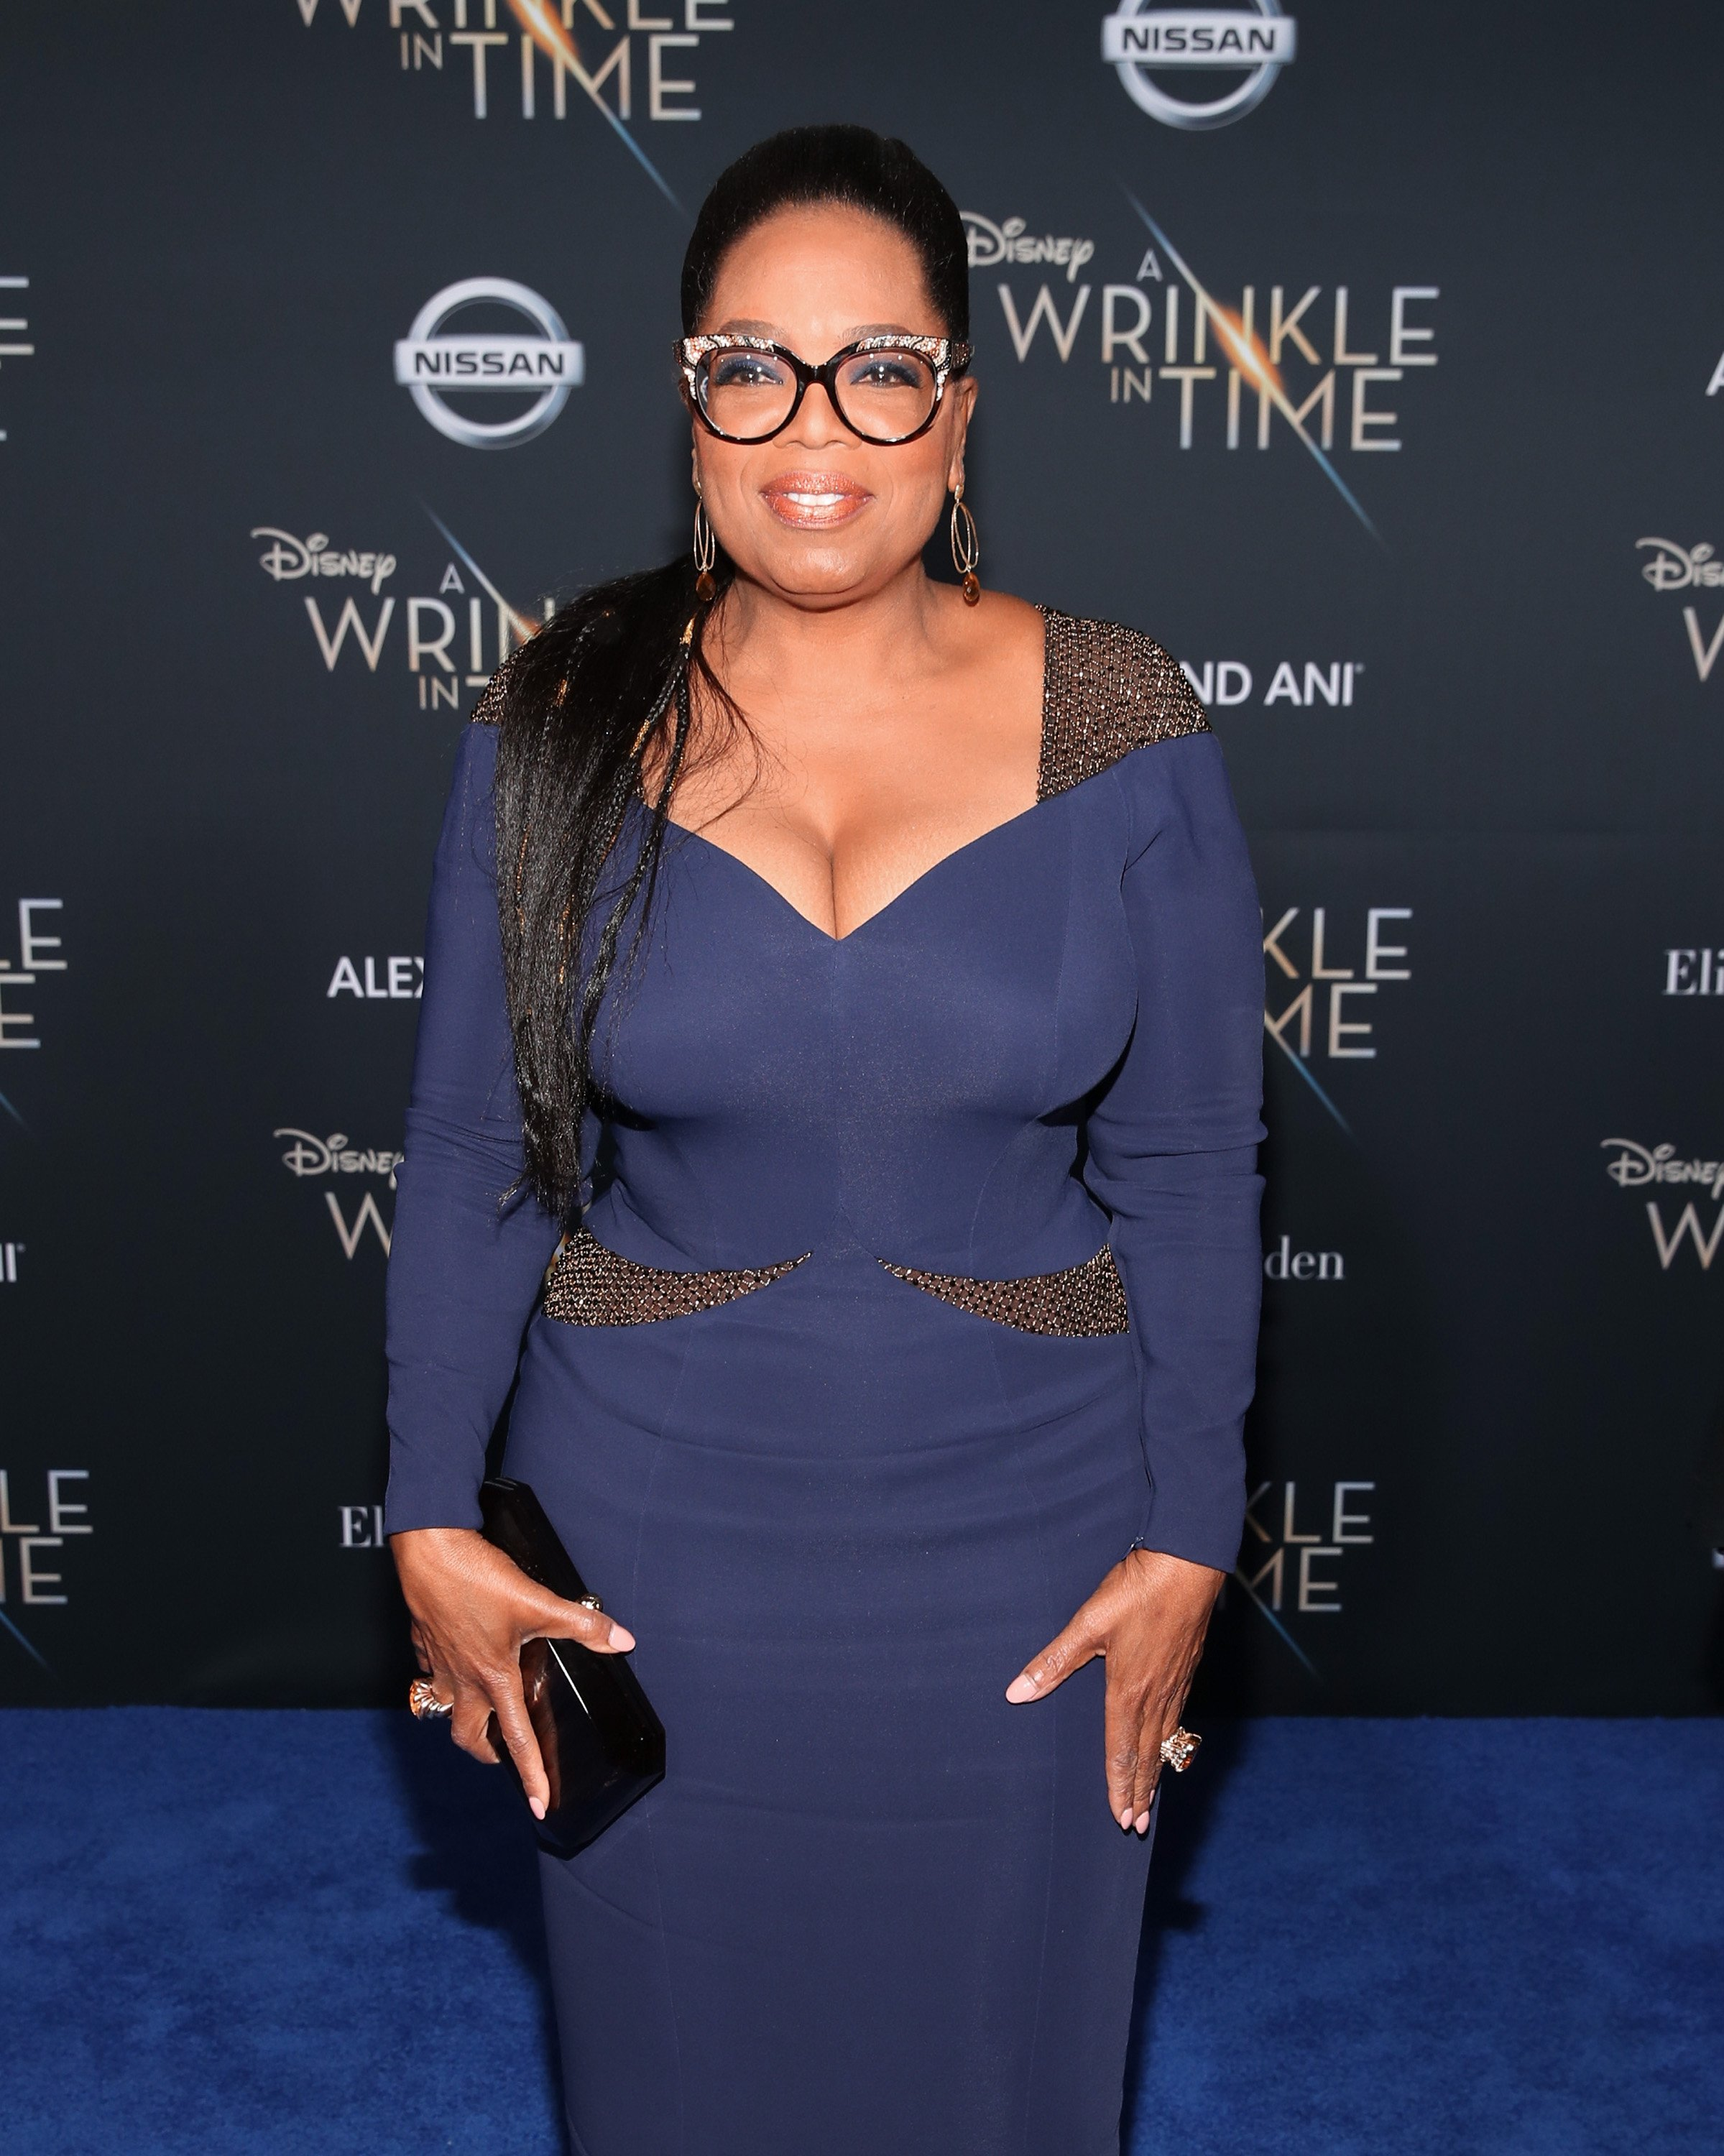 """Oprah Winfrey at the premiere of """"A Wrinkle In Time"""" on February 26, 2018 in Hollywood, California 